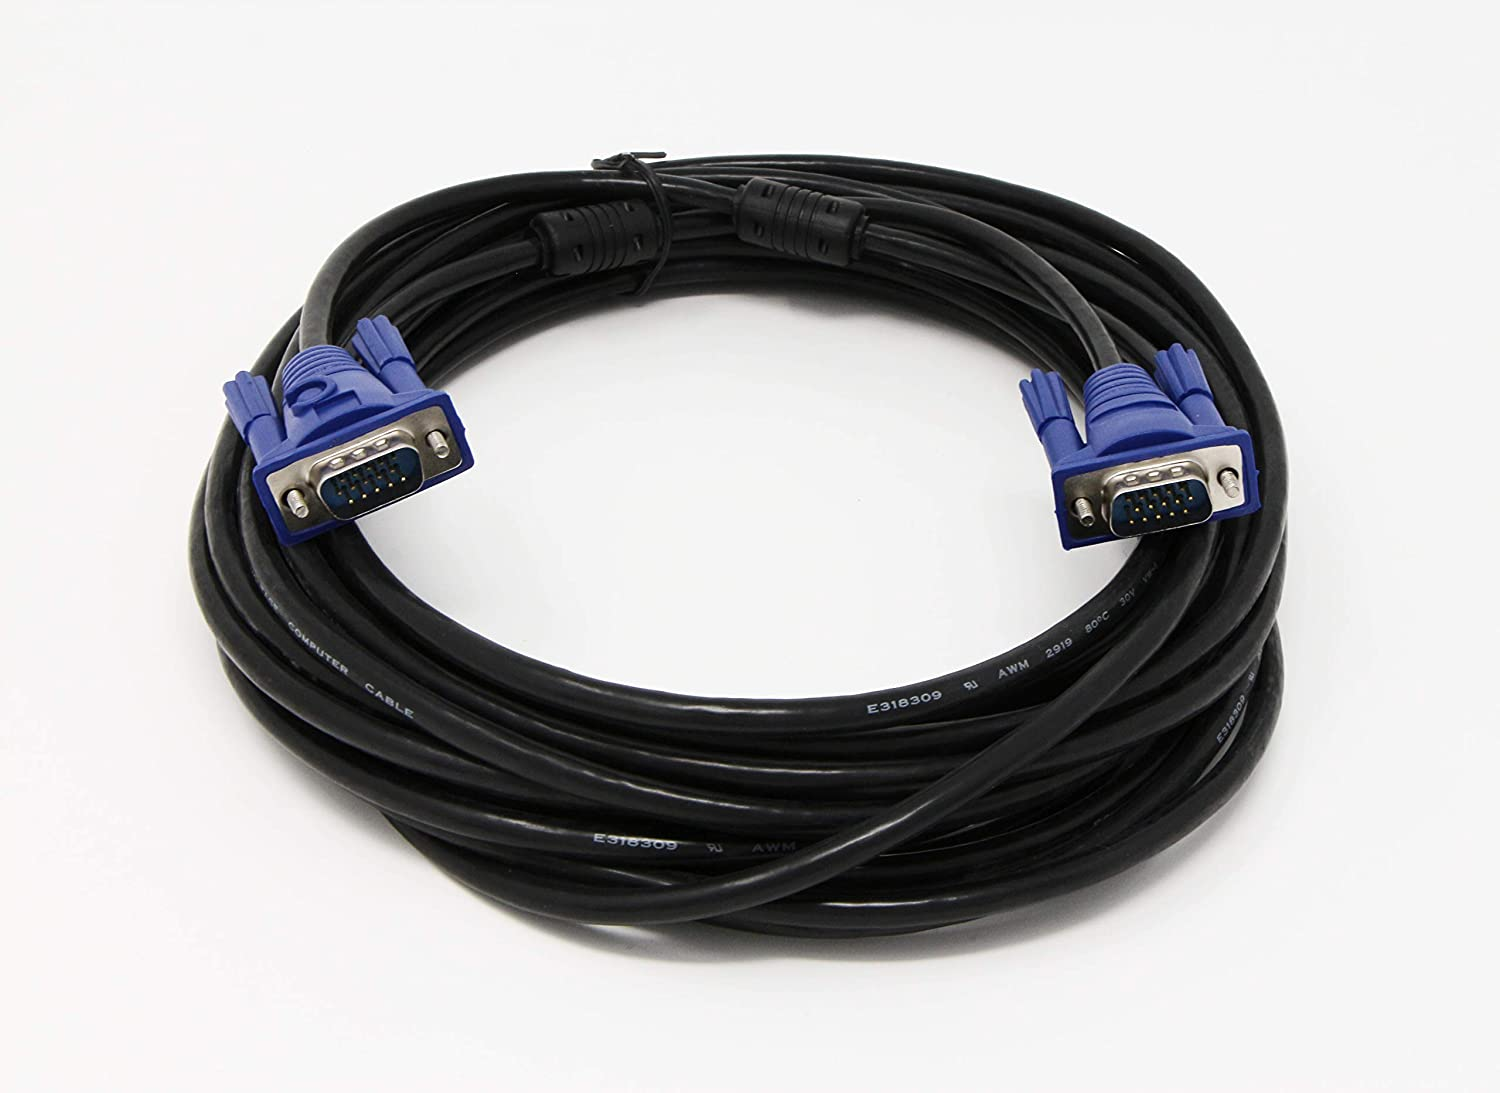 Tupavco Vga Cable 30ft Computer Monitor Projector Pc Wires And Cables Powerpoint Template Is A Free Tv Cord 15 Pin 30 Feet Long Video Tp606 Computers Accessories